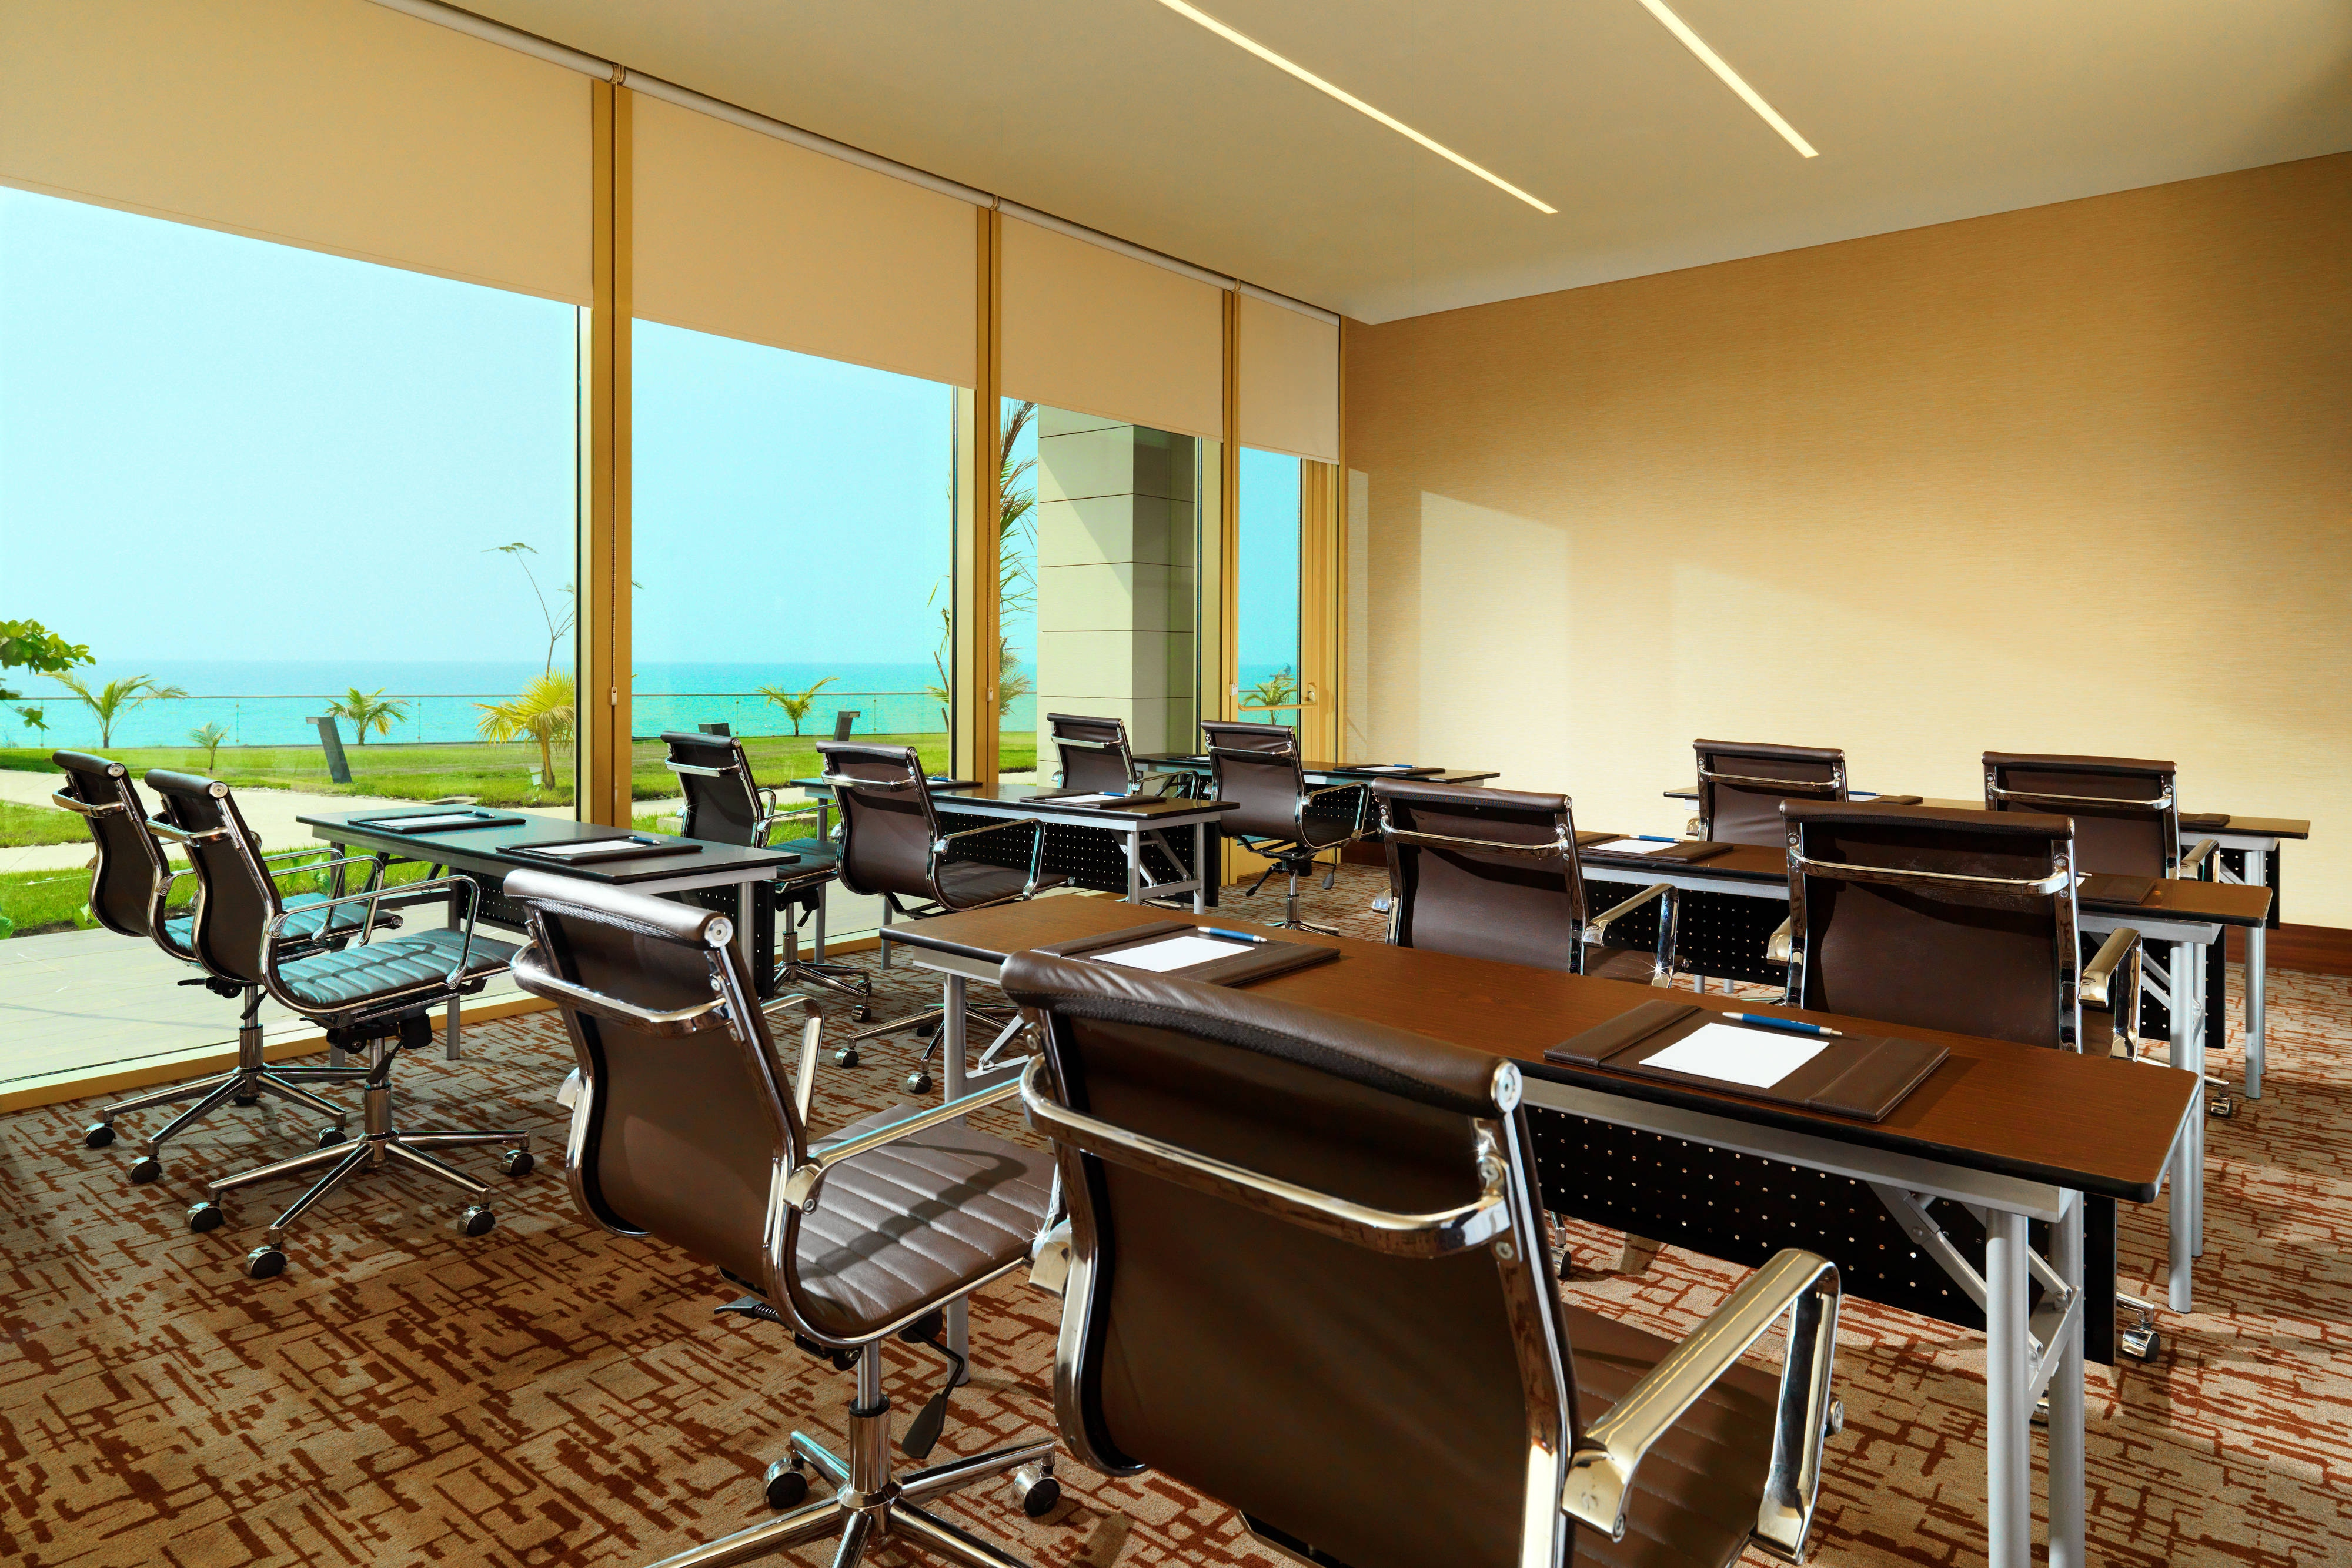 Meeting Room Class Room Style